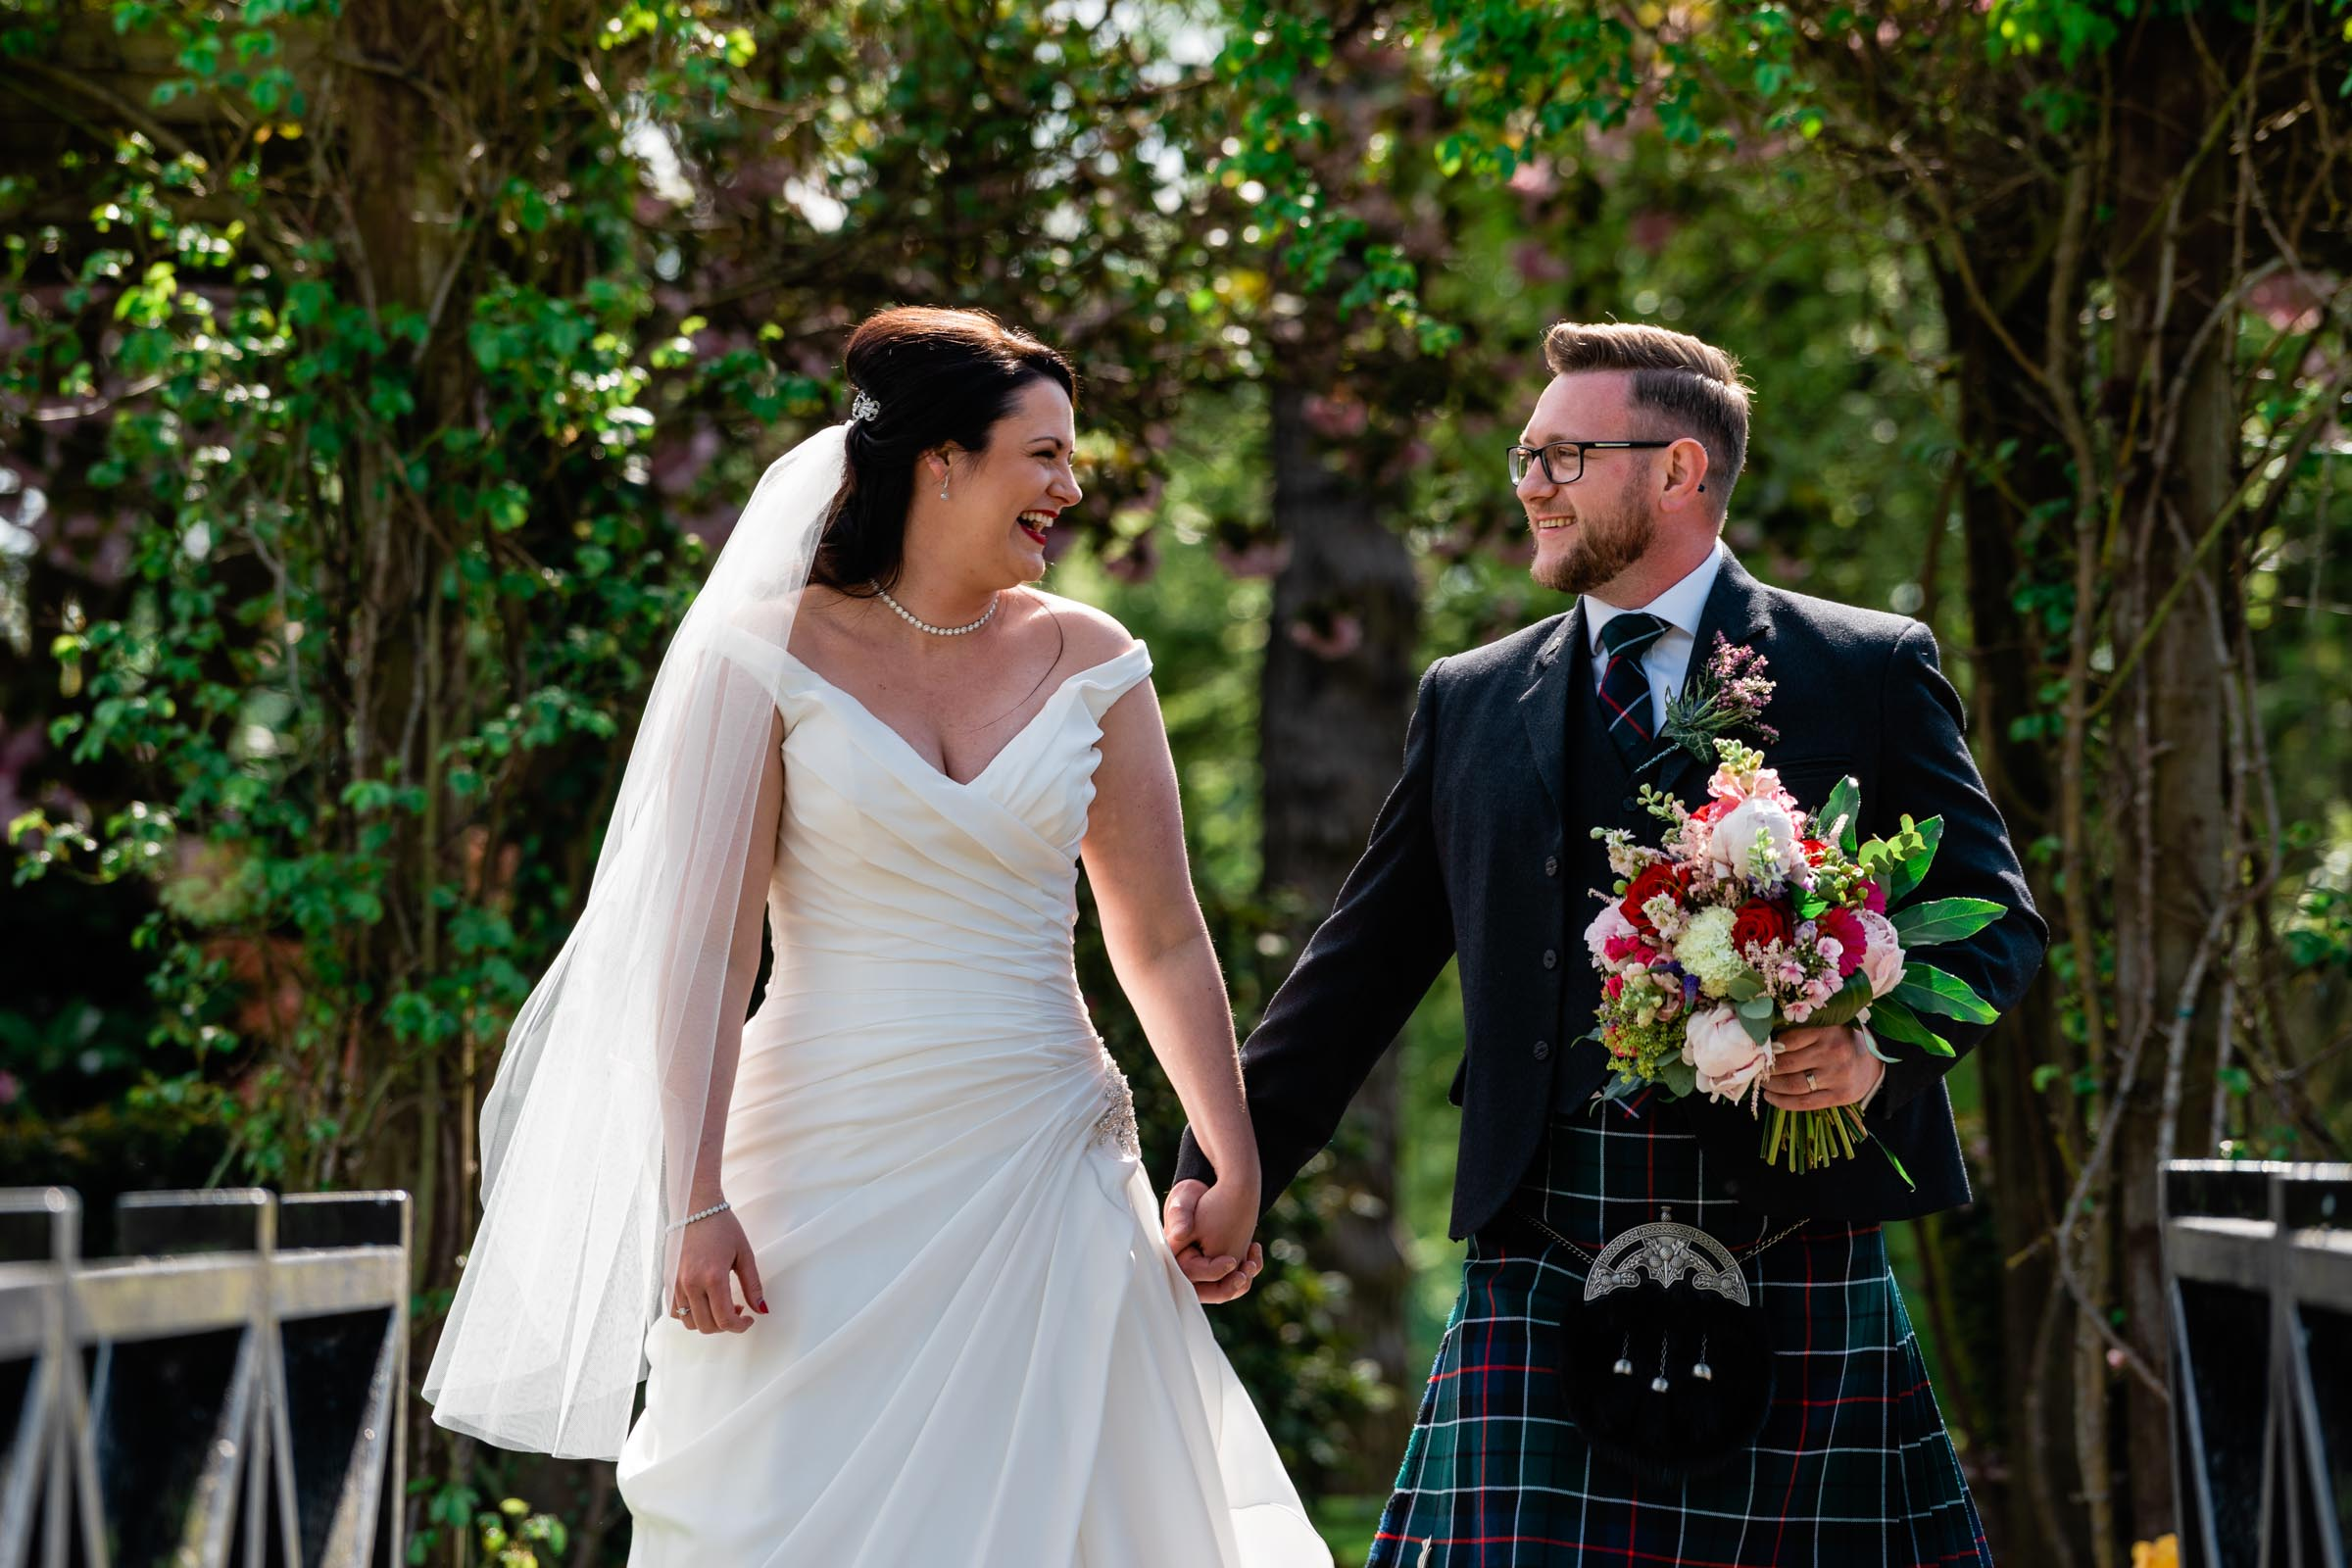 David was fantastic at our wedding! He was professional and put us completely at ease (even in my moment of anxious nerves just before the ceremony!). Our guests all commented on how lovely he was and always up for a laugh (we don't take ourselves too seriously!) We definitely can't recommend him enough! - Claire & Barry, May 2018